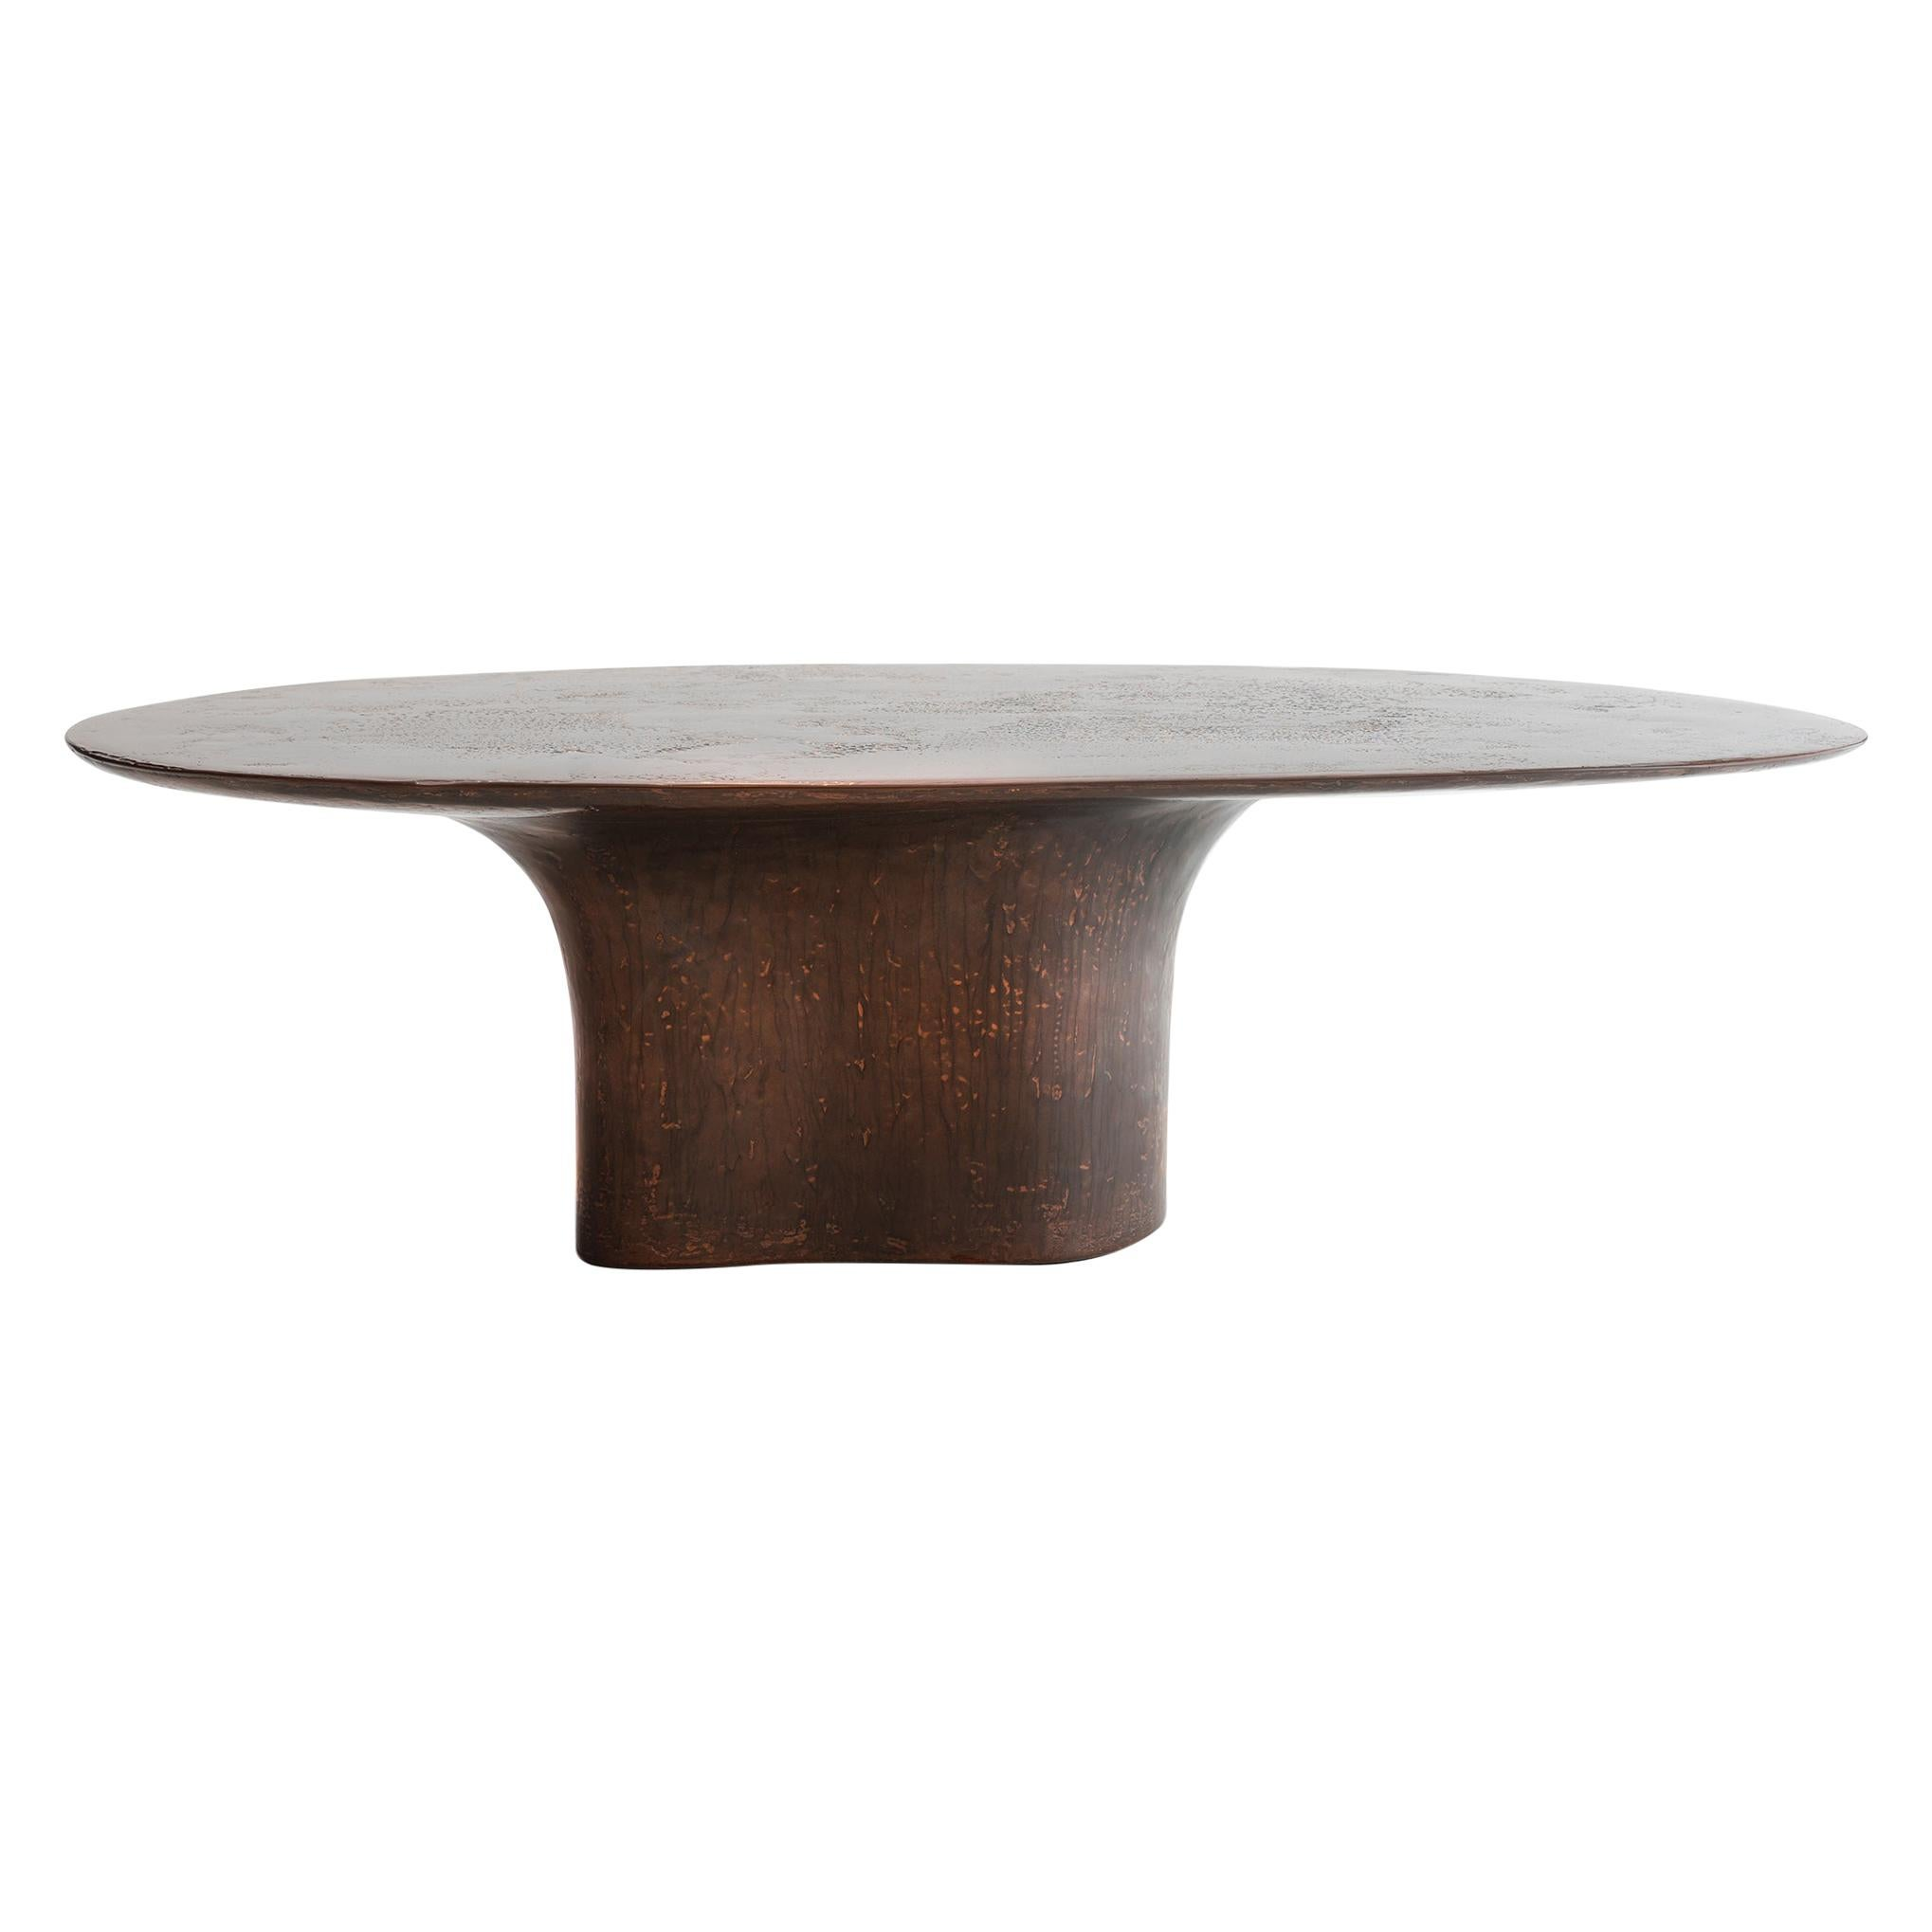 NR Copper V2, 21st Century Sculptured Liquid Oxidized Copper Oval Coffee Table